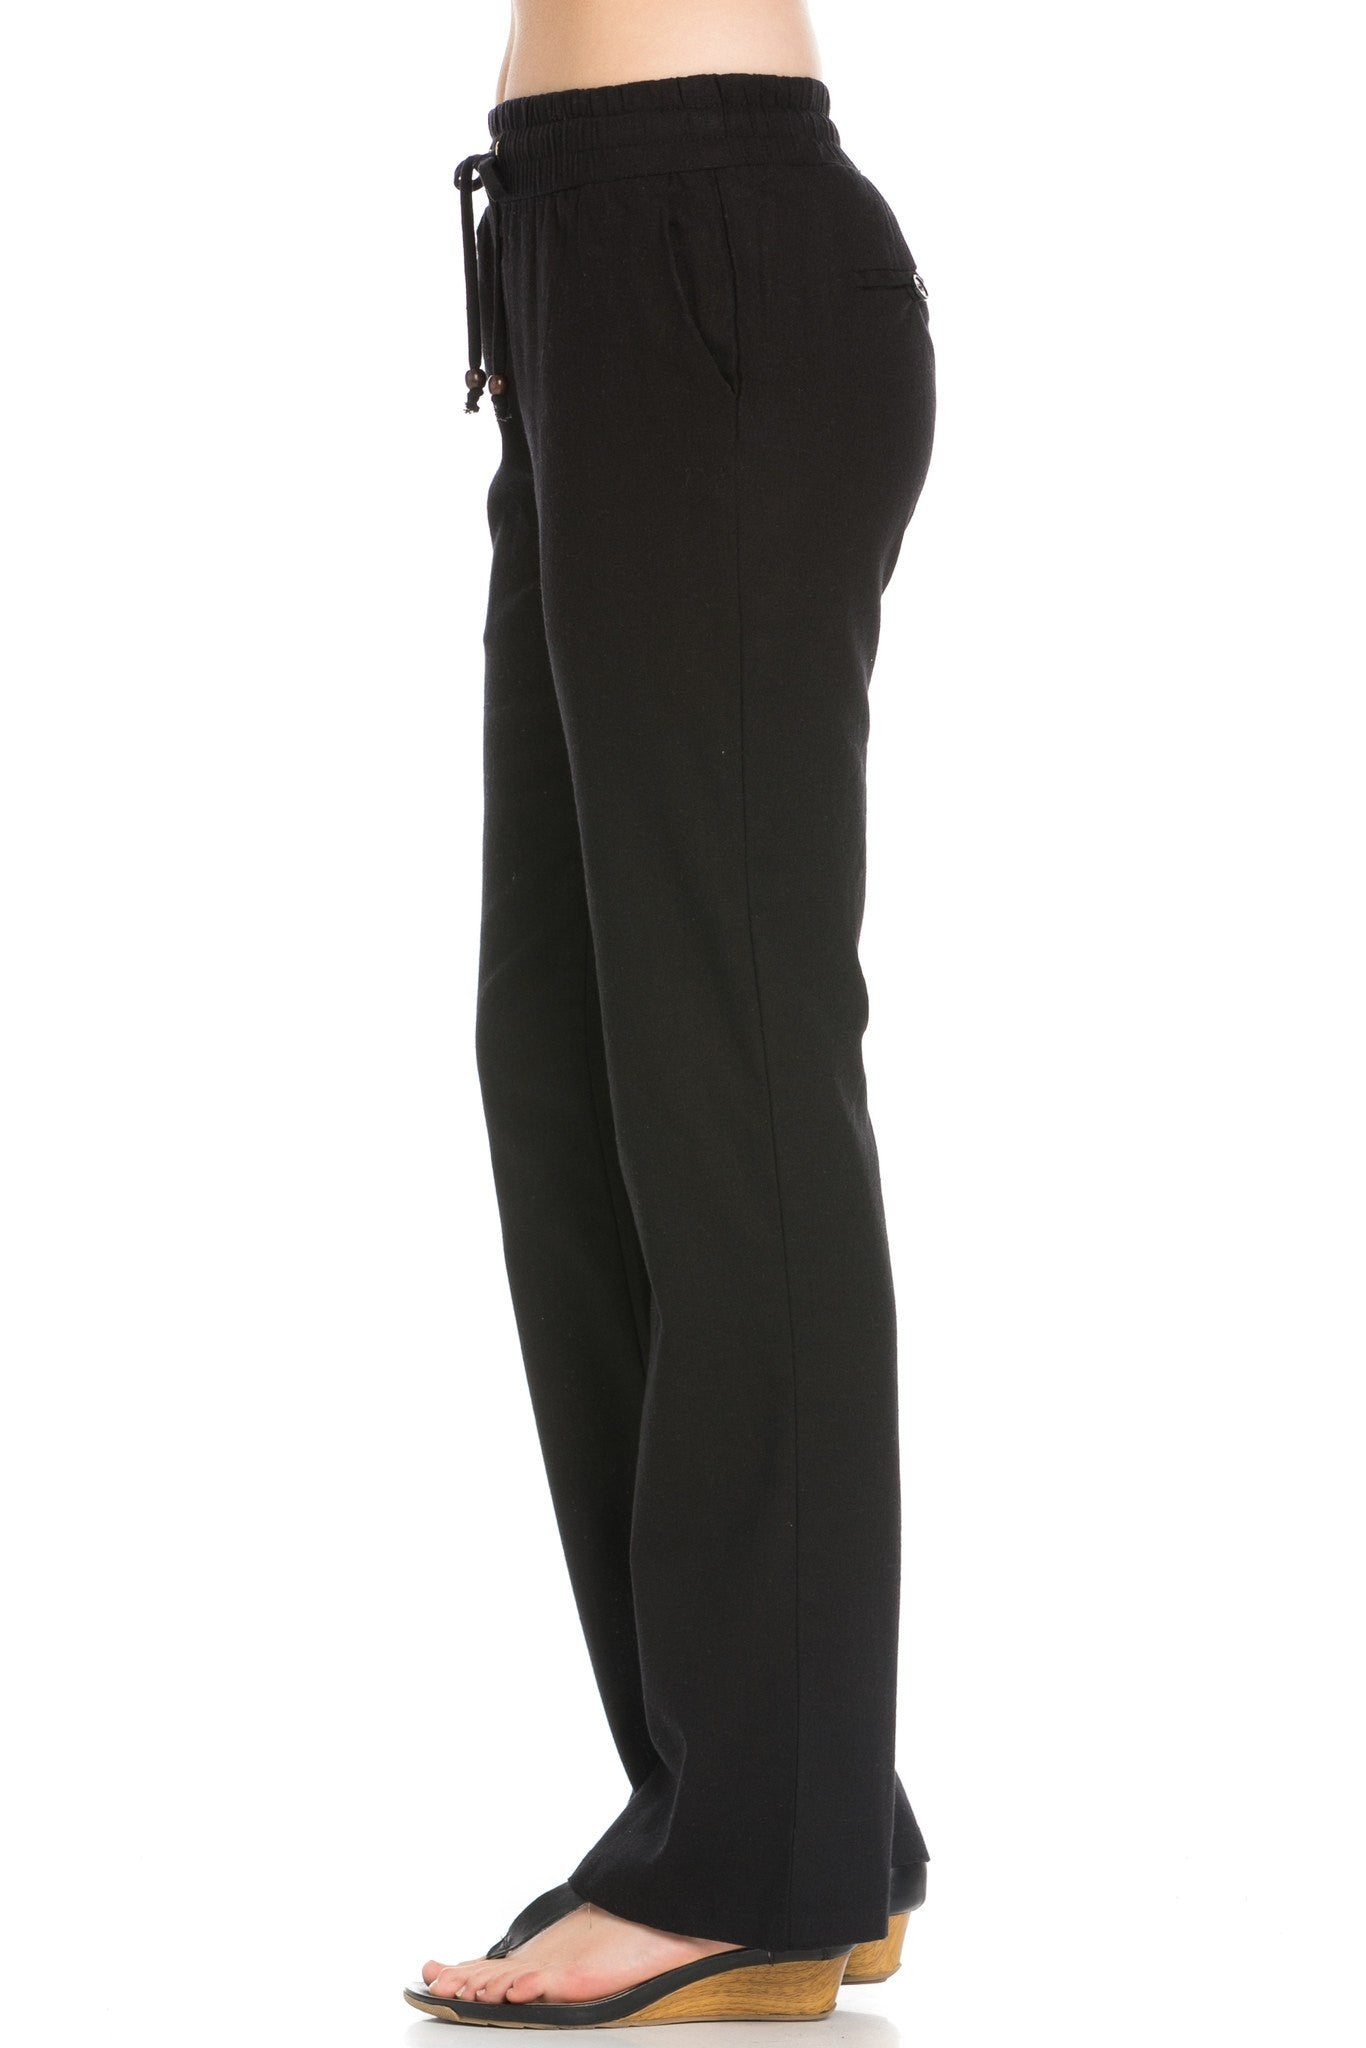 Comfy Drawstring Linen Pants Long with Band Waist (Black) - Poplooks